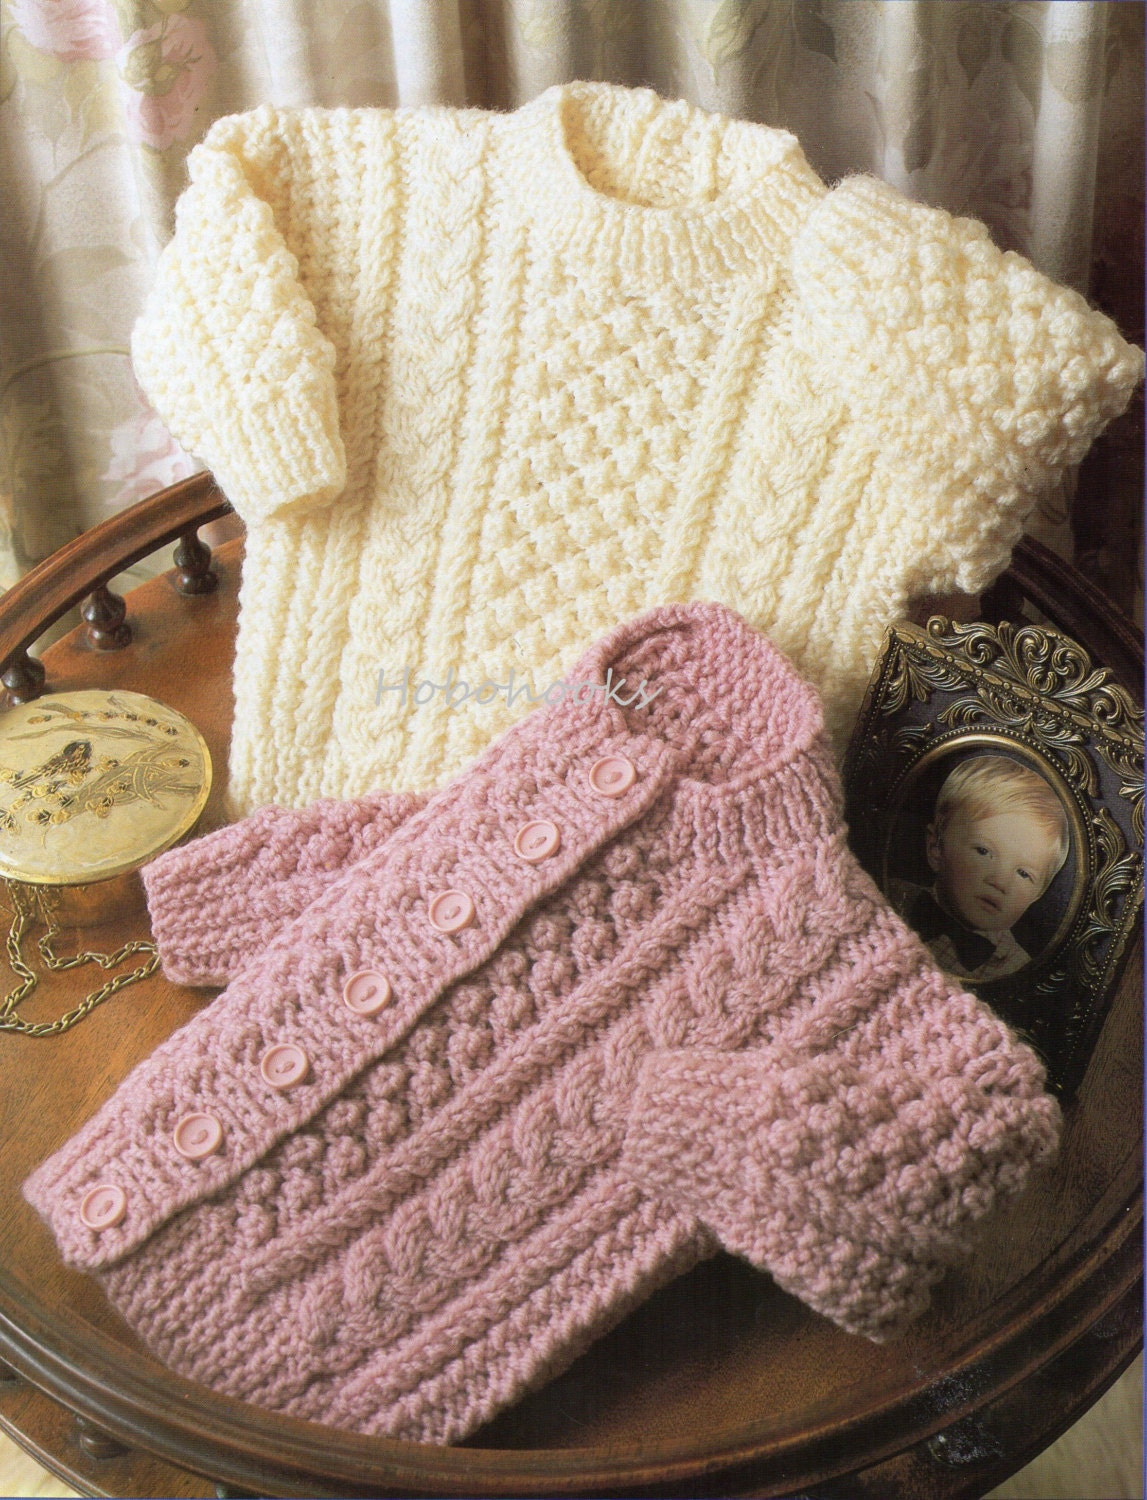 Free Knitting Patterns For Childrens Aran Sweaters : Baby Knitting Pattern Baby Aran Sweater Baby Aran by Hobohooks